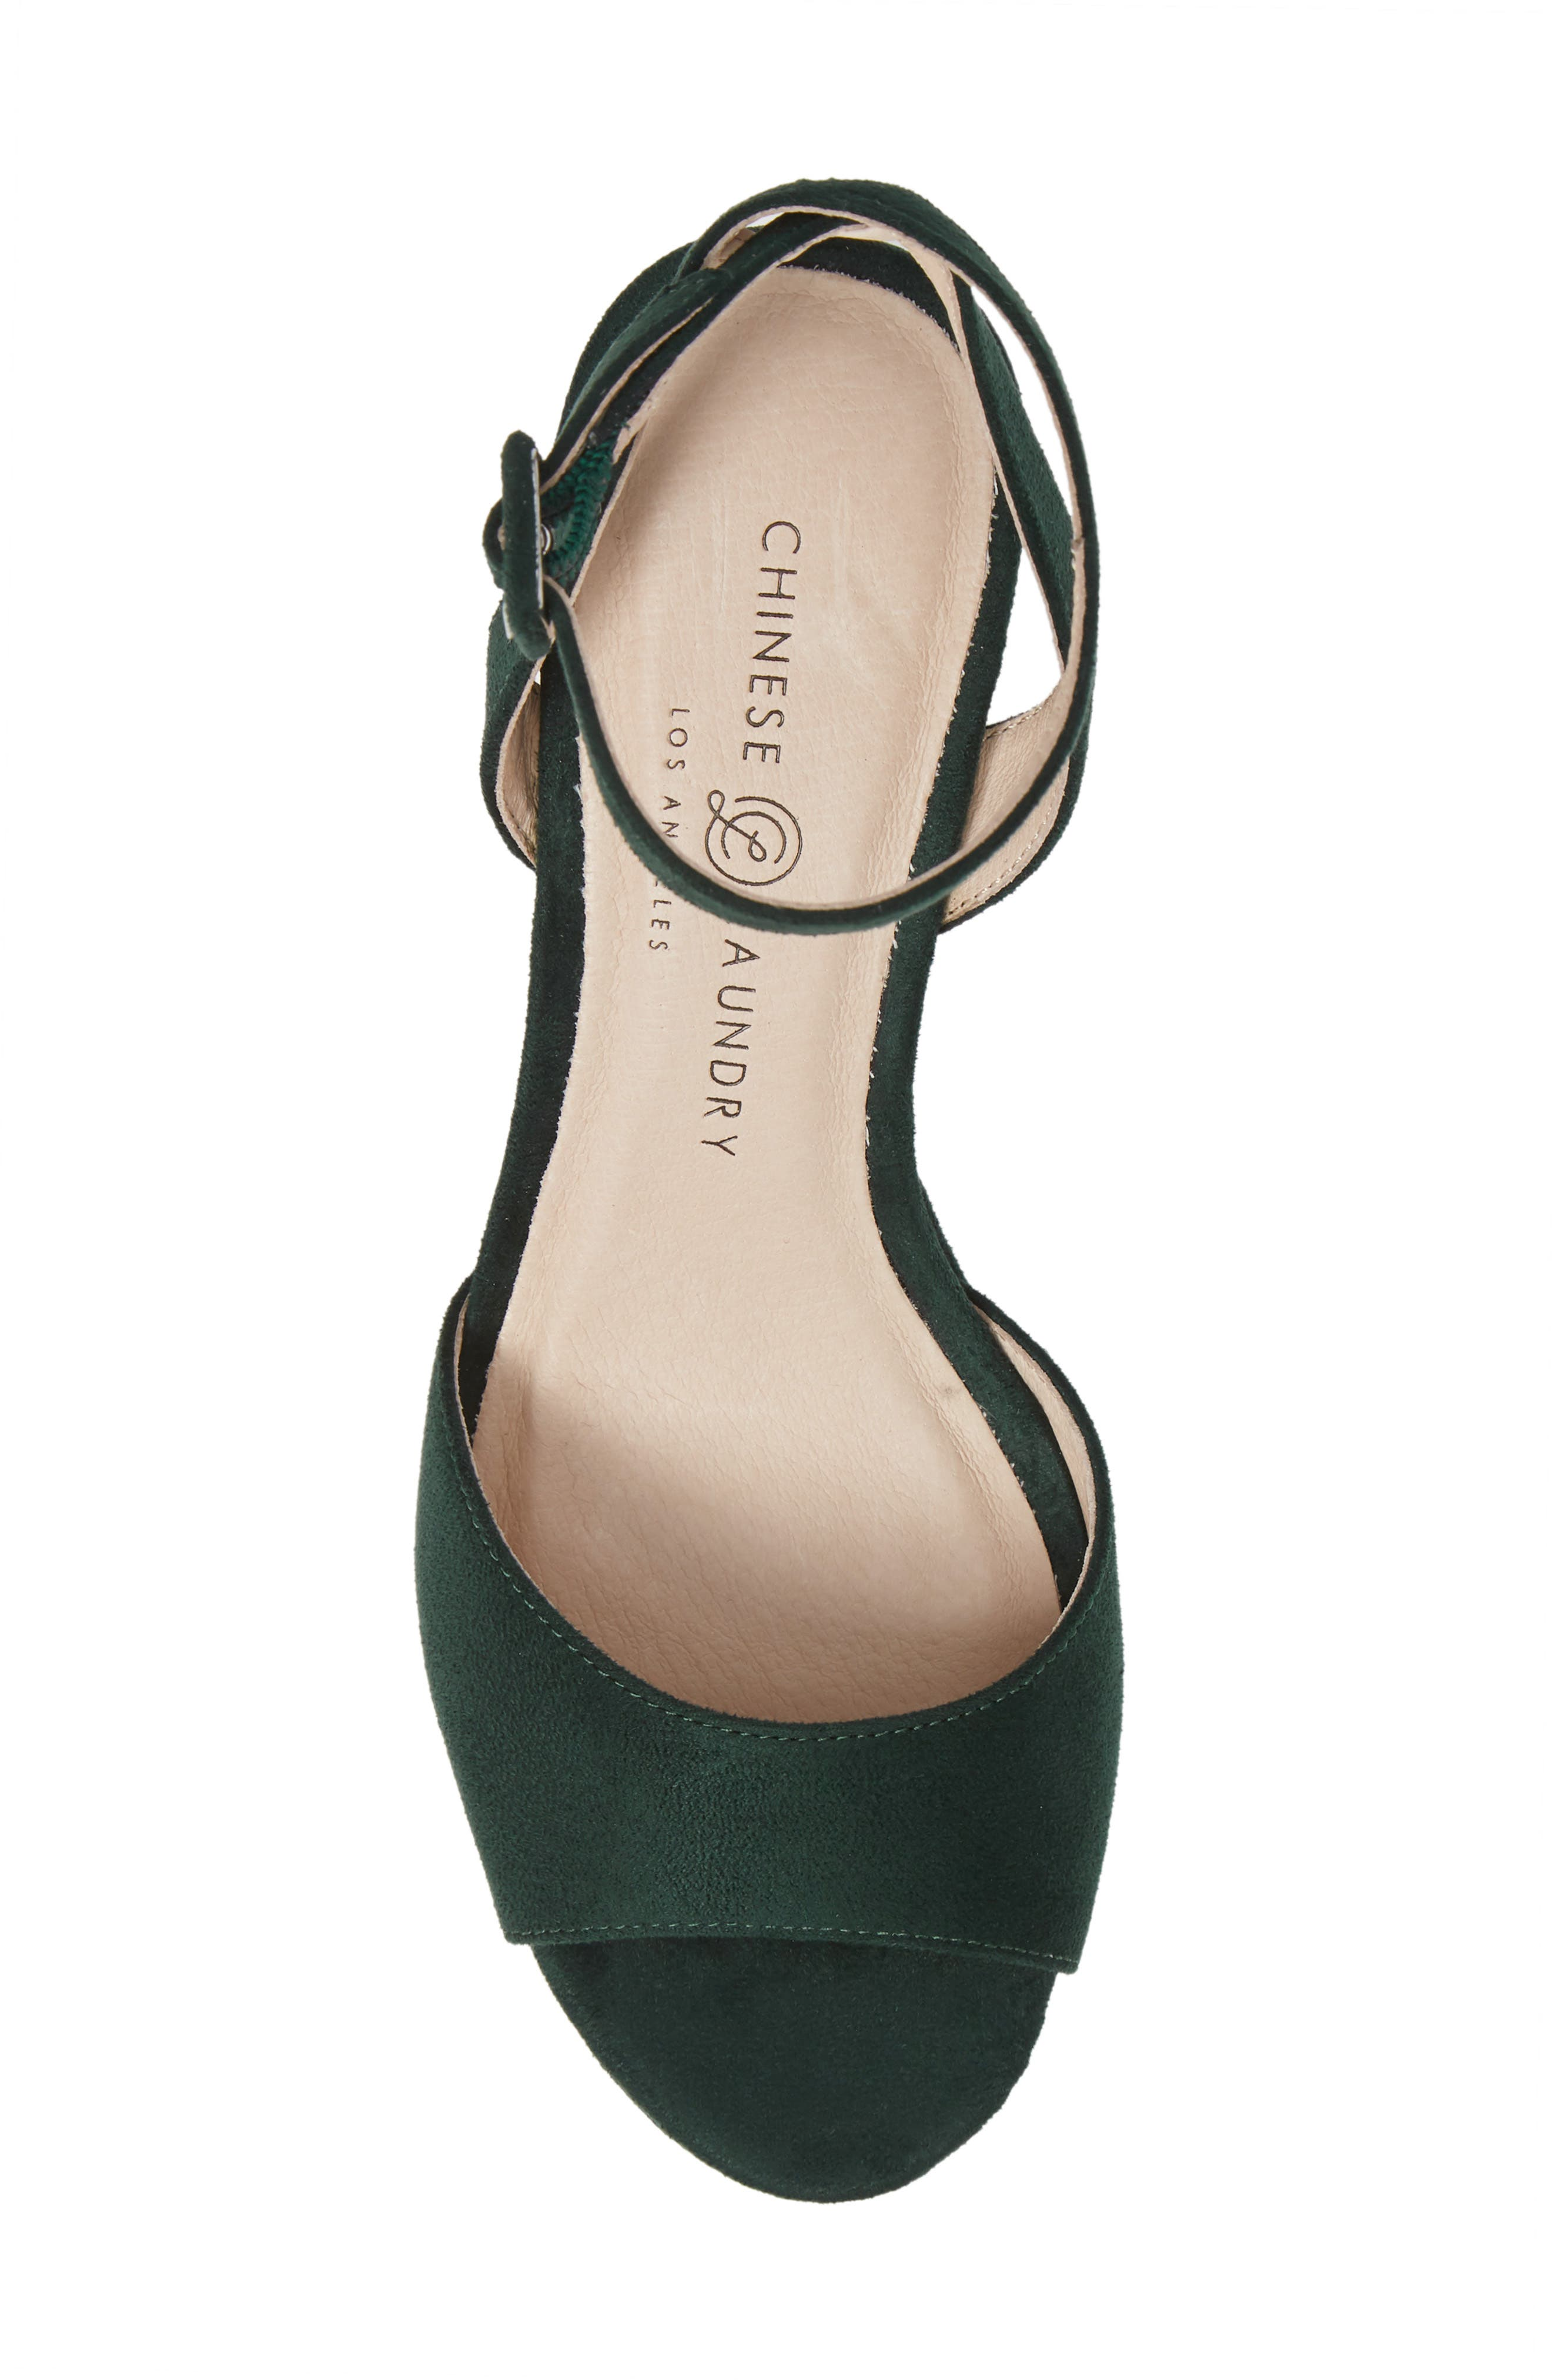 CHINESE LAUNDRY, Theresa Platform Sandal, Alternate thumbnail 5, color, FOREST GREEN SUEDE